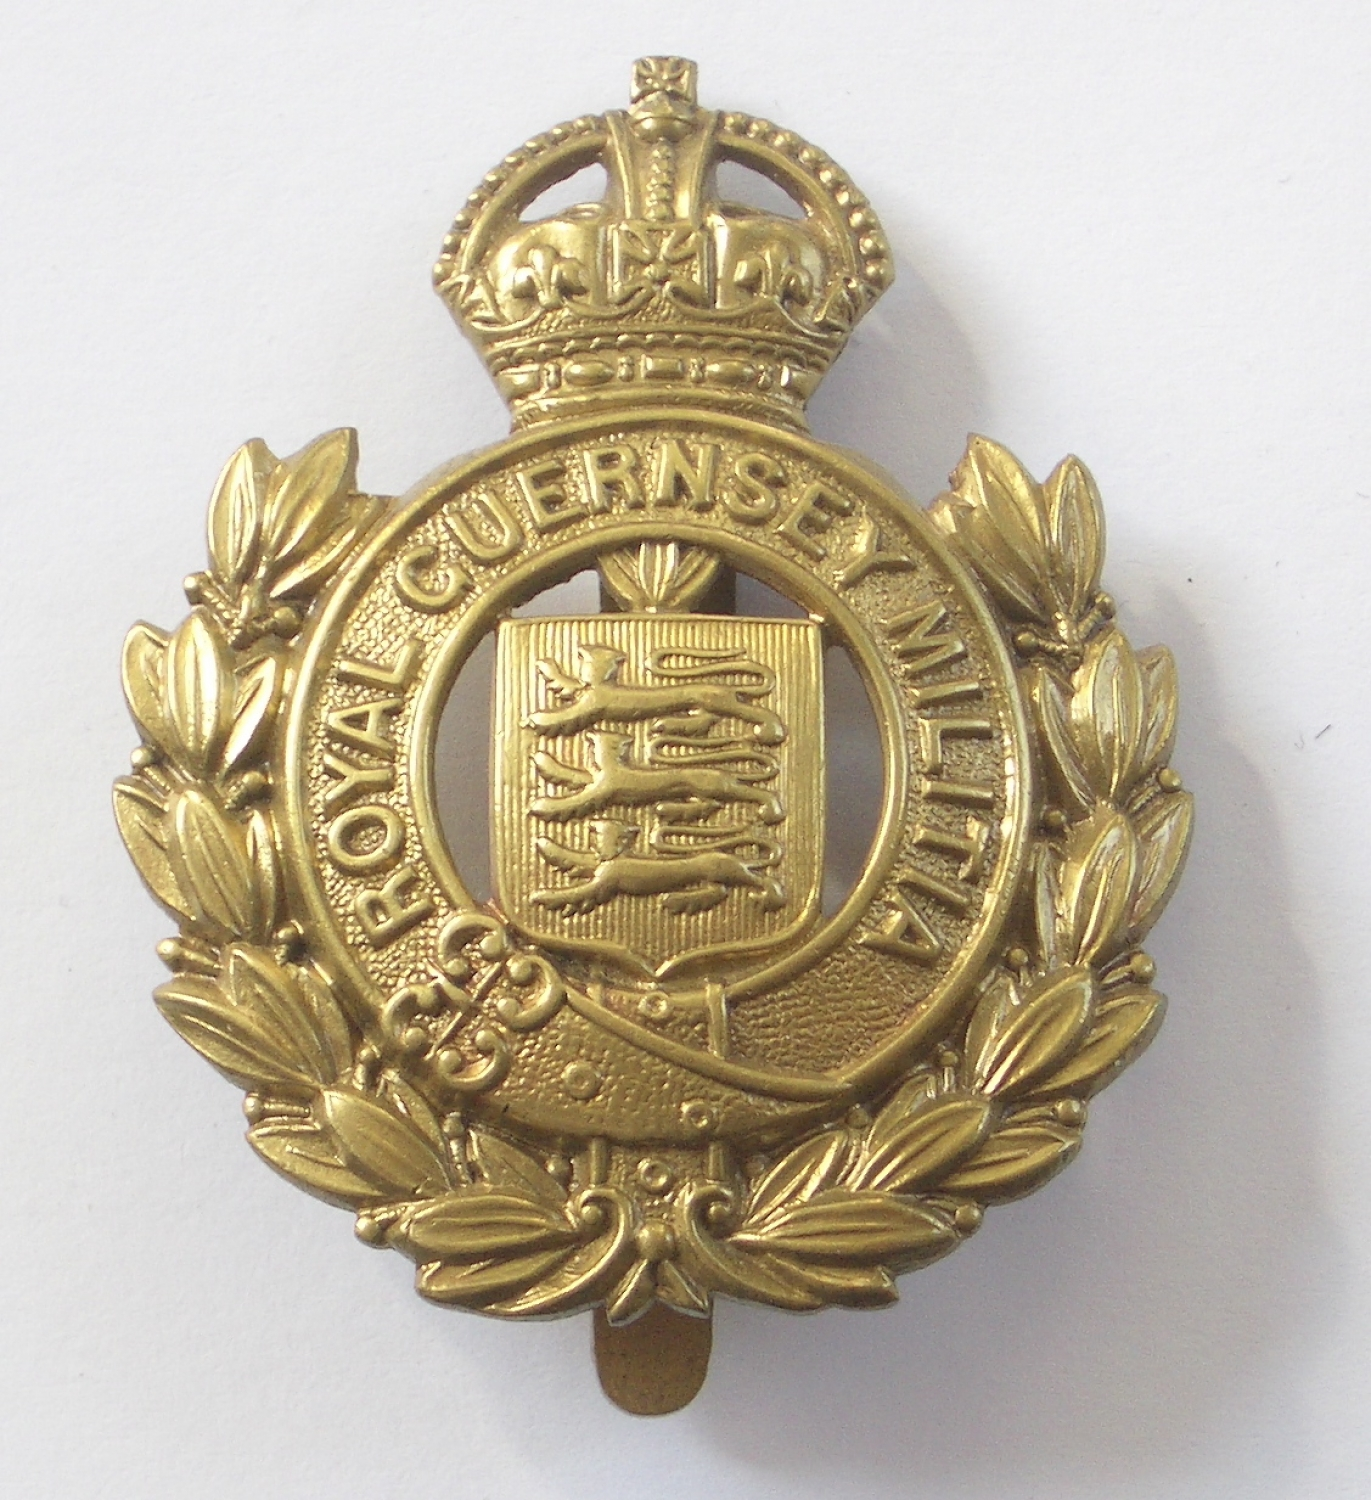 Royal Guernsey Militia cap badge